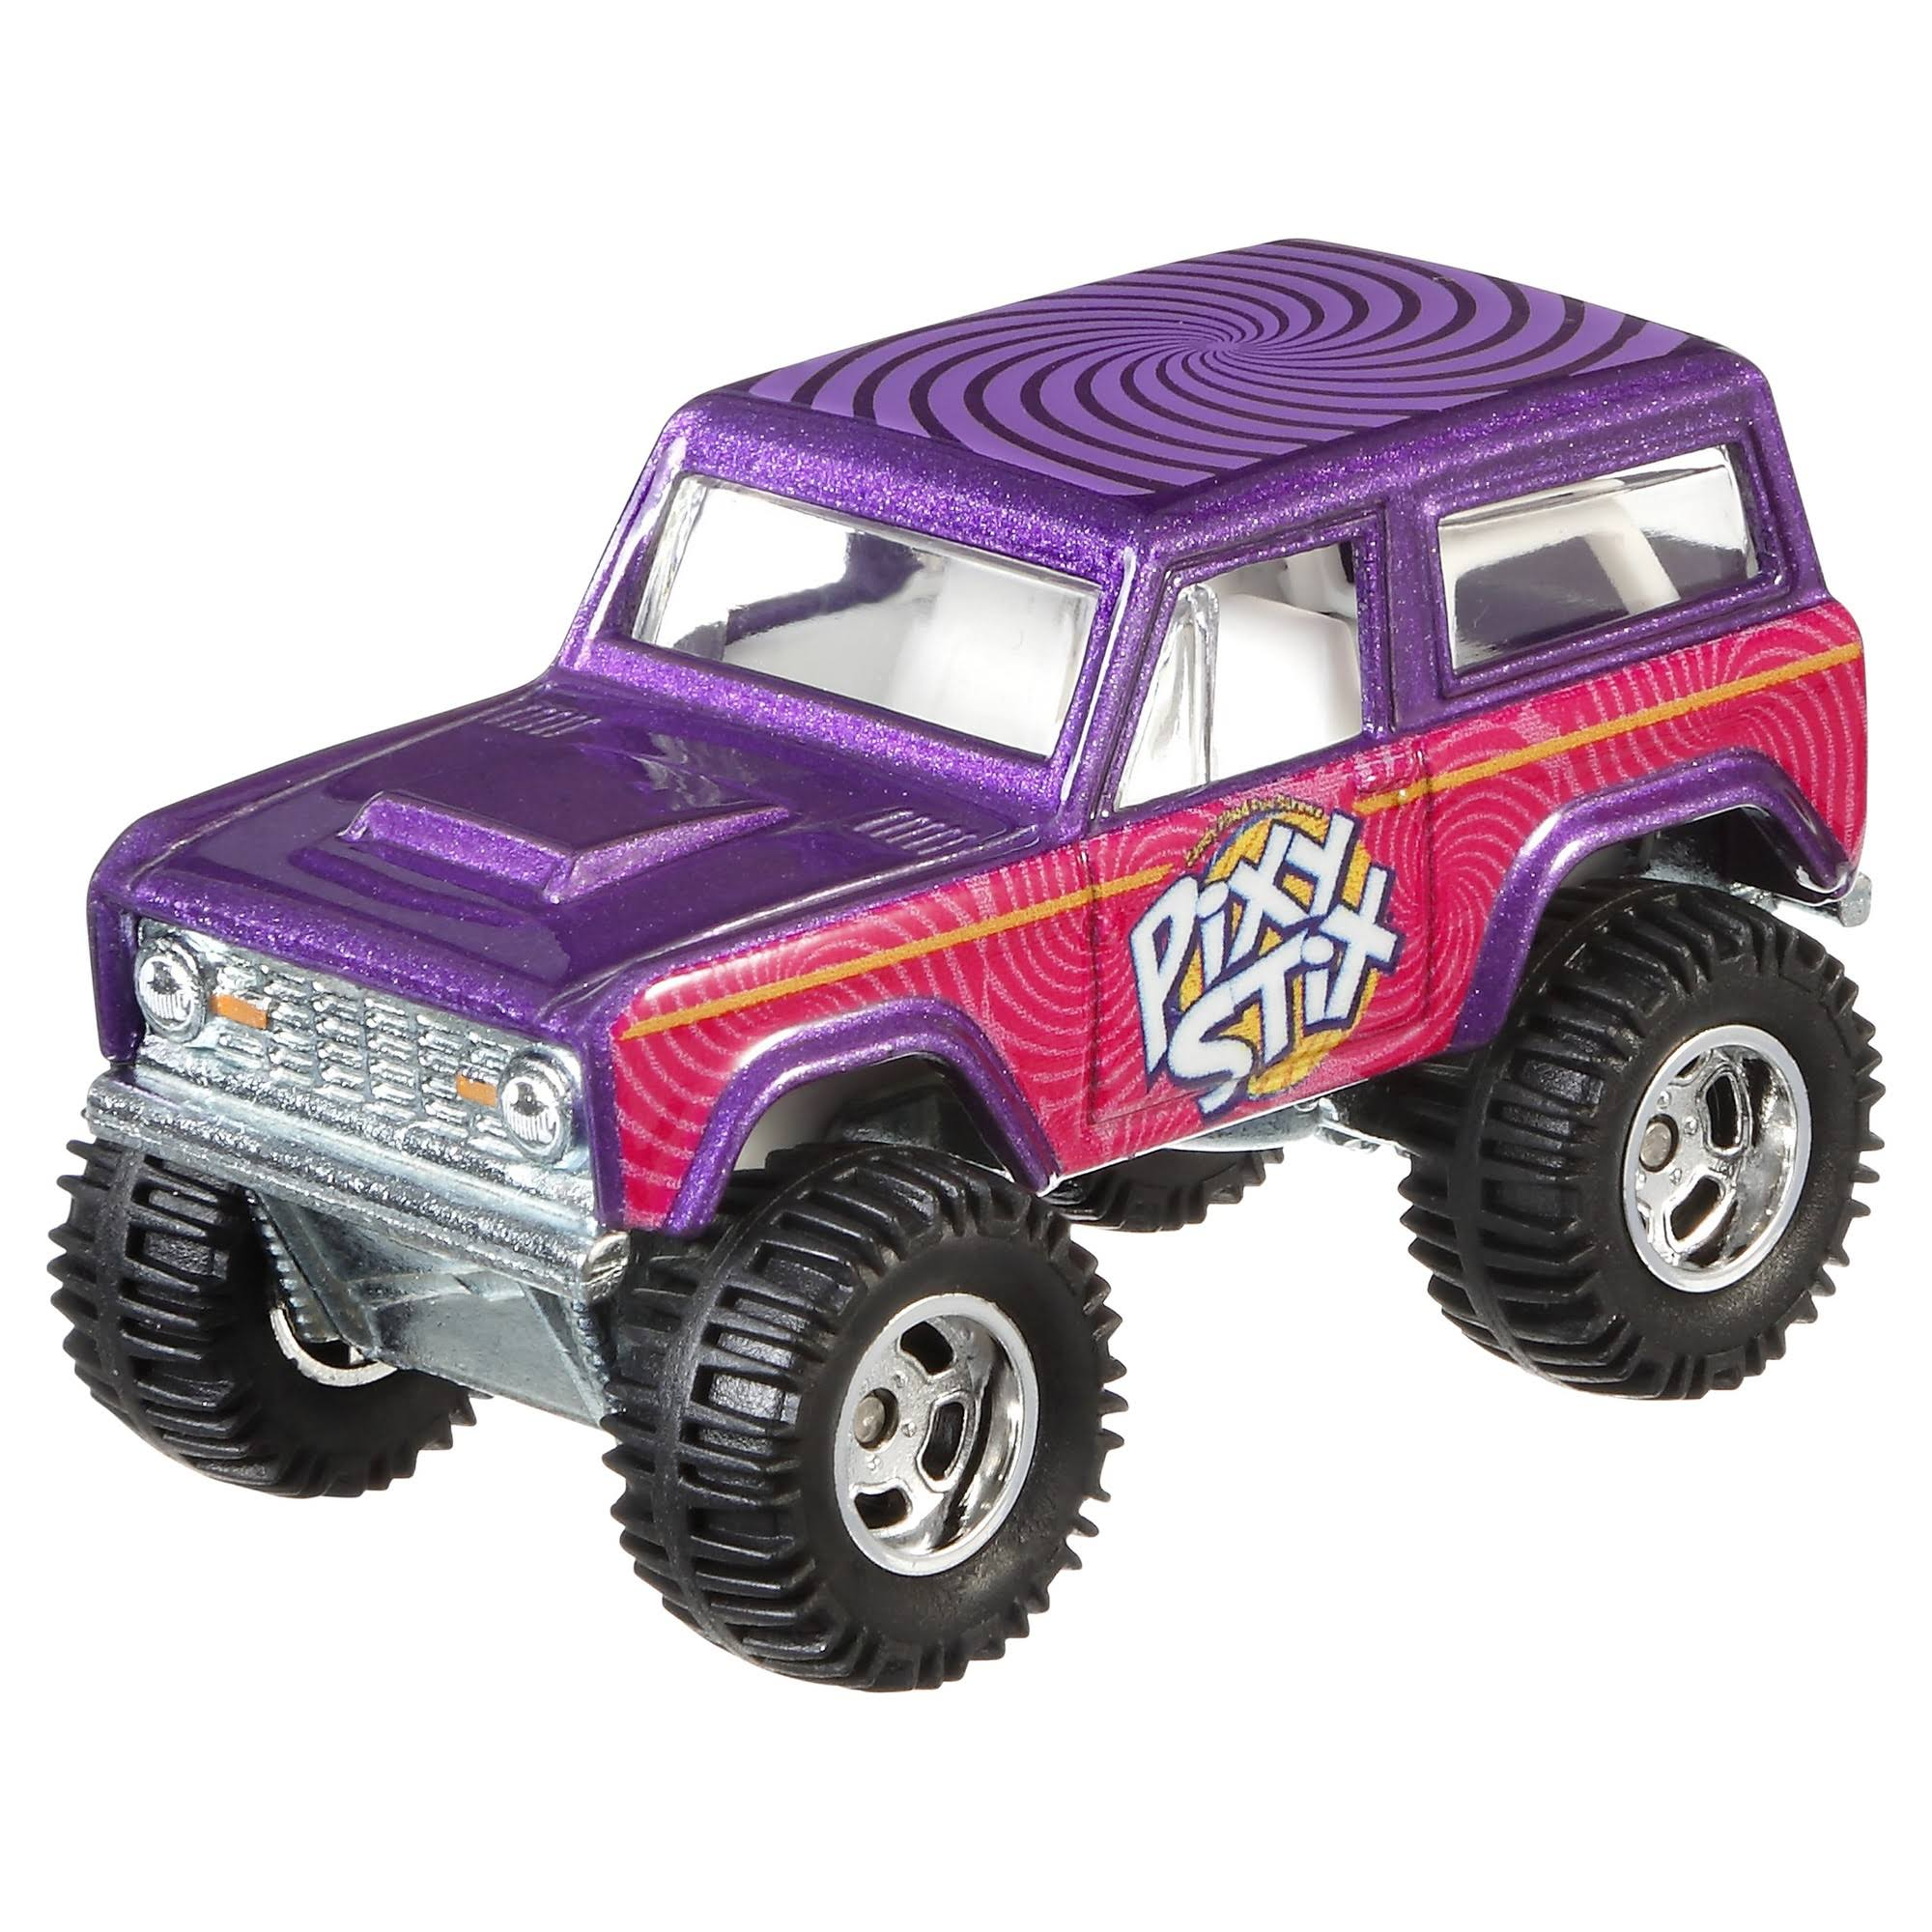 Hot Wheels Pixie Stix Ford Bronco Diecast